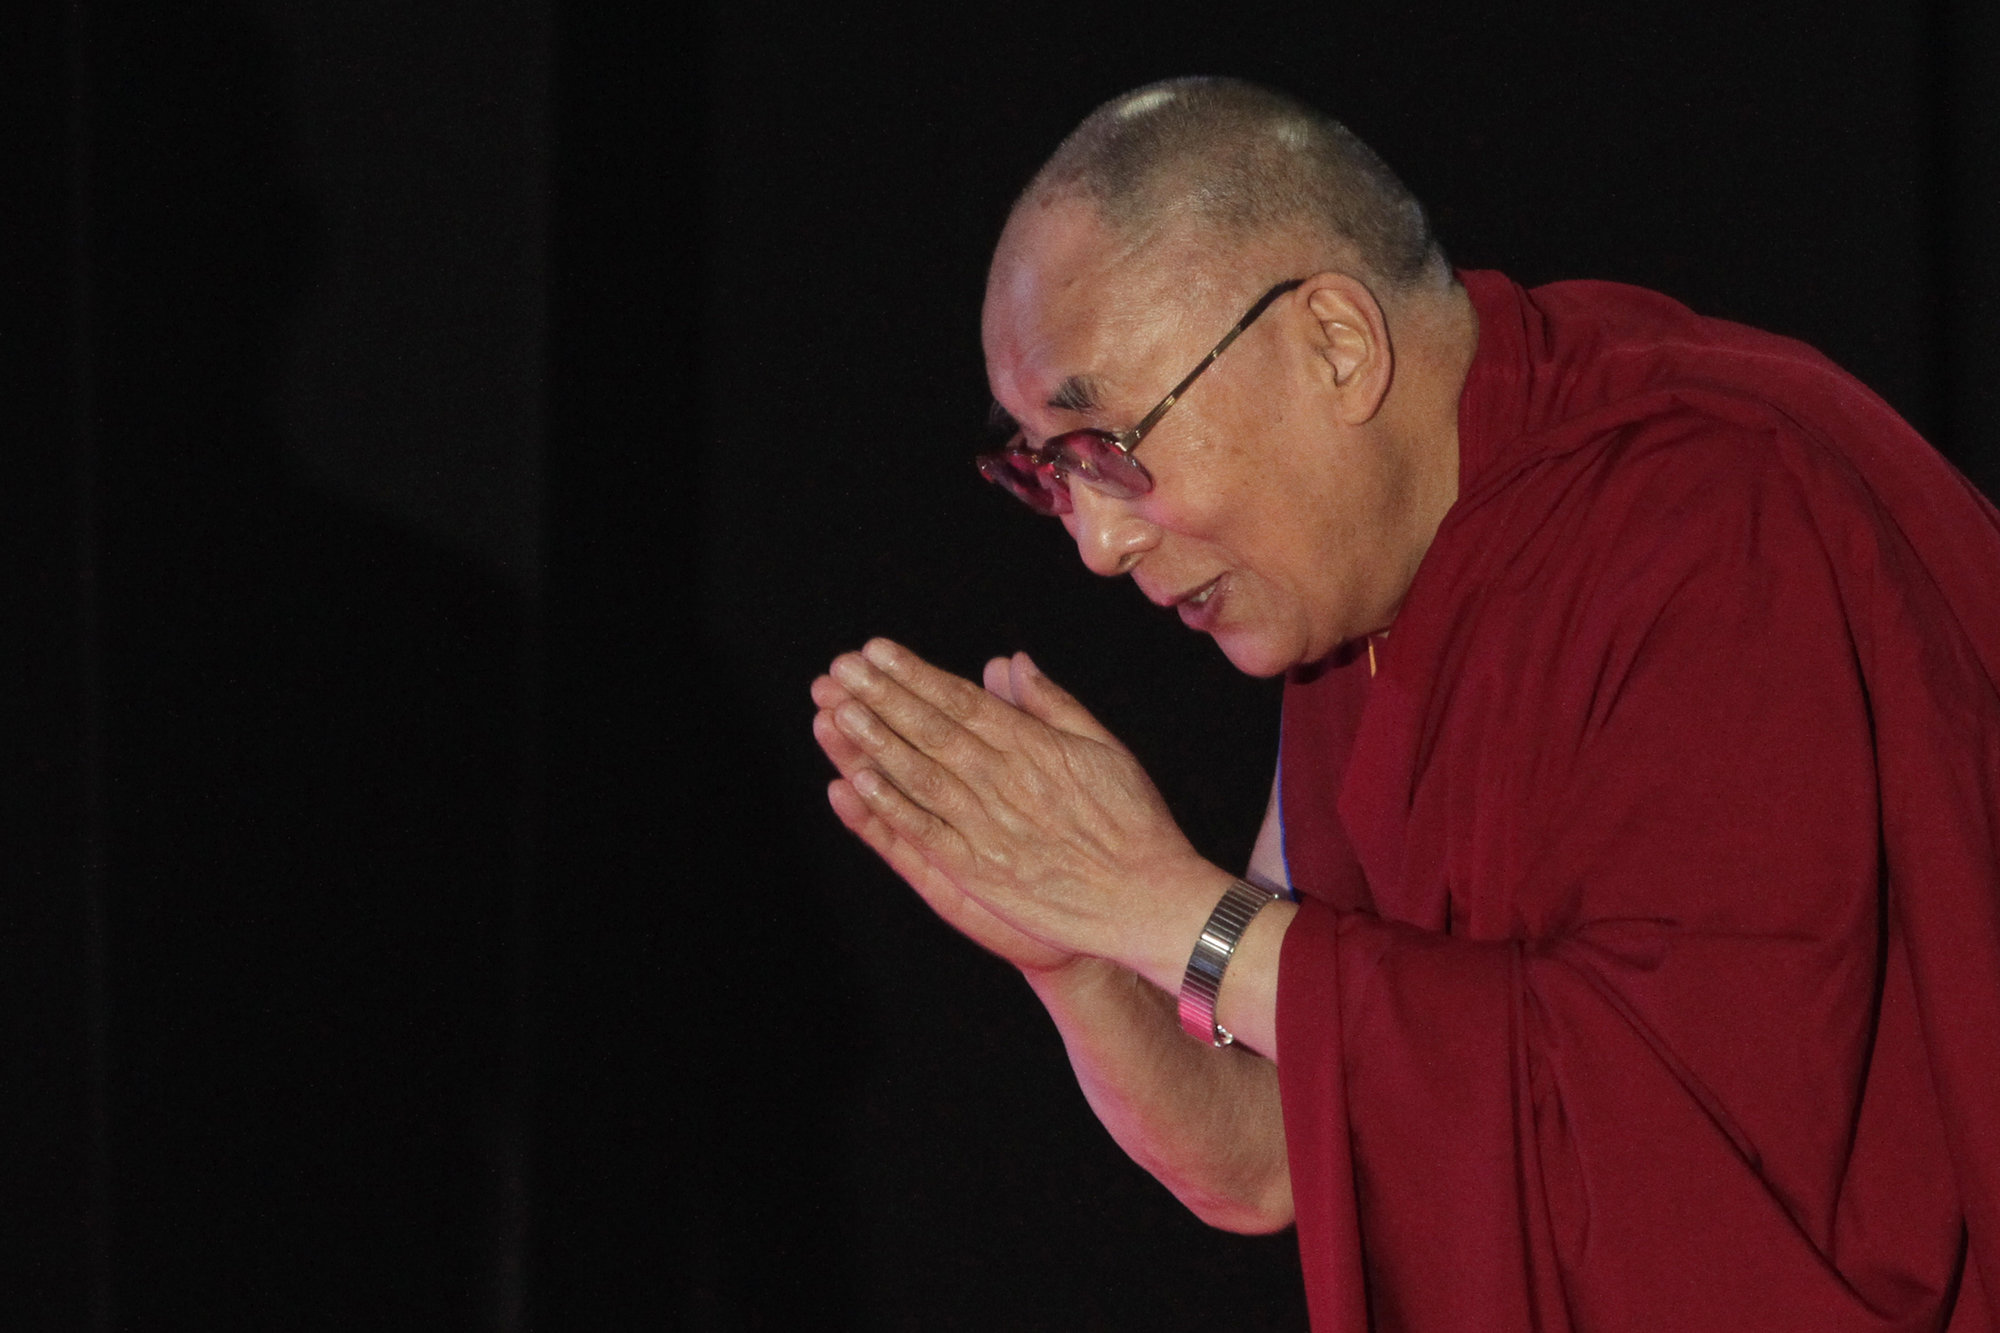 """<p>Tibetan spiritual leader the Dalai Lama greets the audience as he arrives to speak on """"A Human Approach to World Peace"""" at Presidency College in Kolkata, India, onJan. 13, 2015.</p>"""